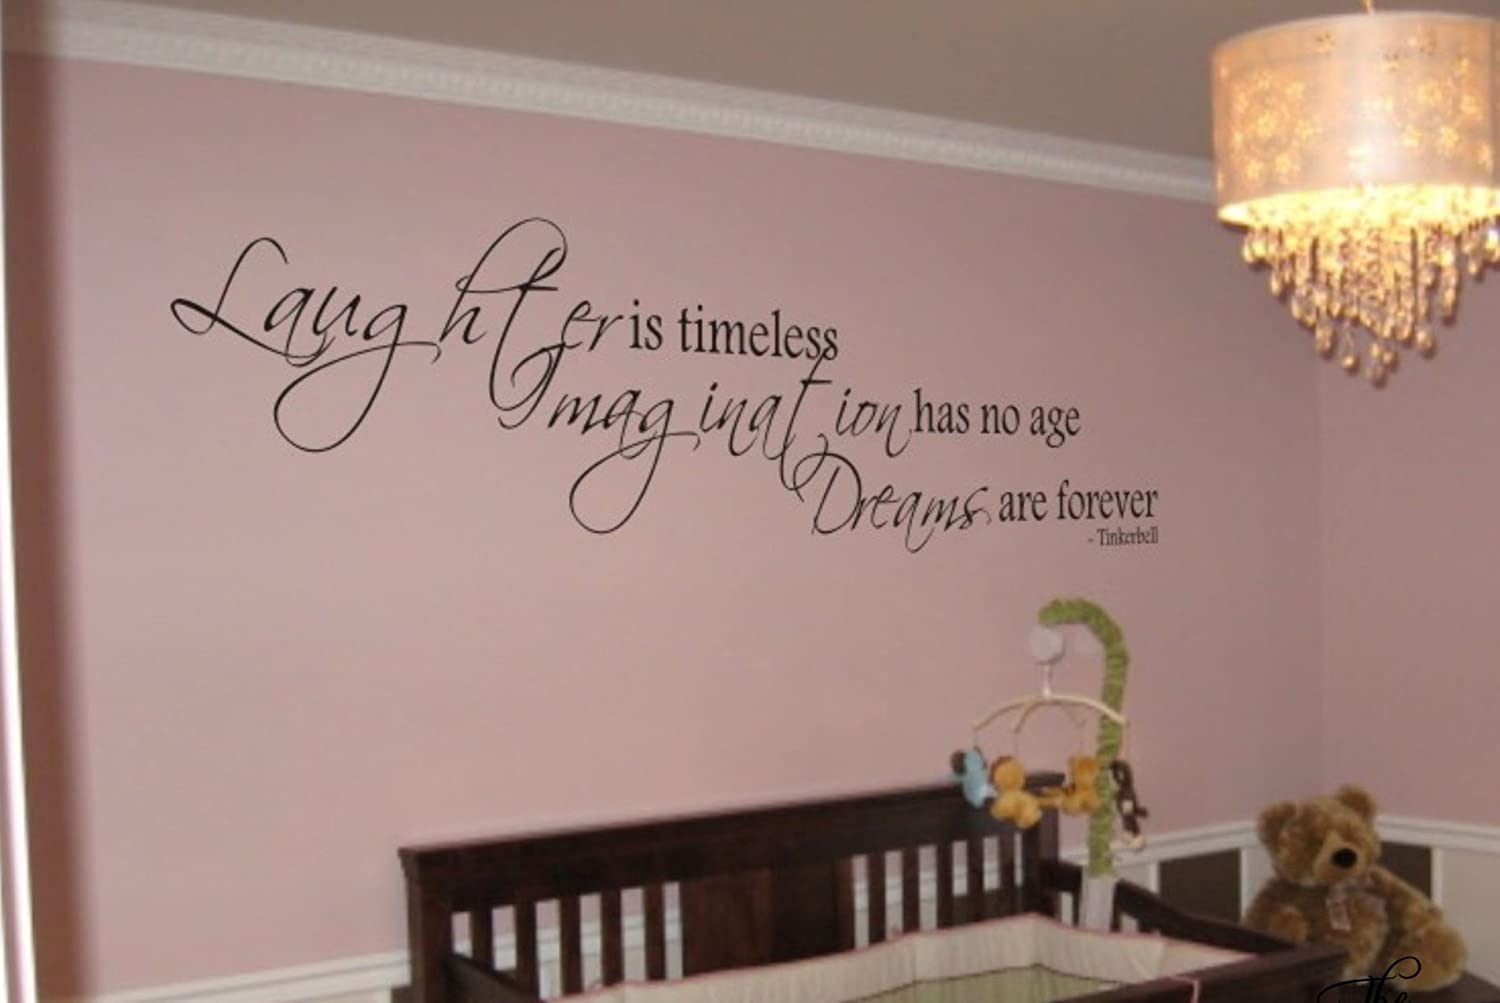 Tinkerbell quote laughter is timeless vinyl wall decal decor tinkerbell quote laughter is timeless vinyl wall decal decor sticker disney quote decals amazon amipublicfo Images